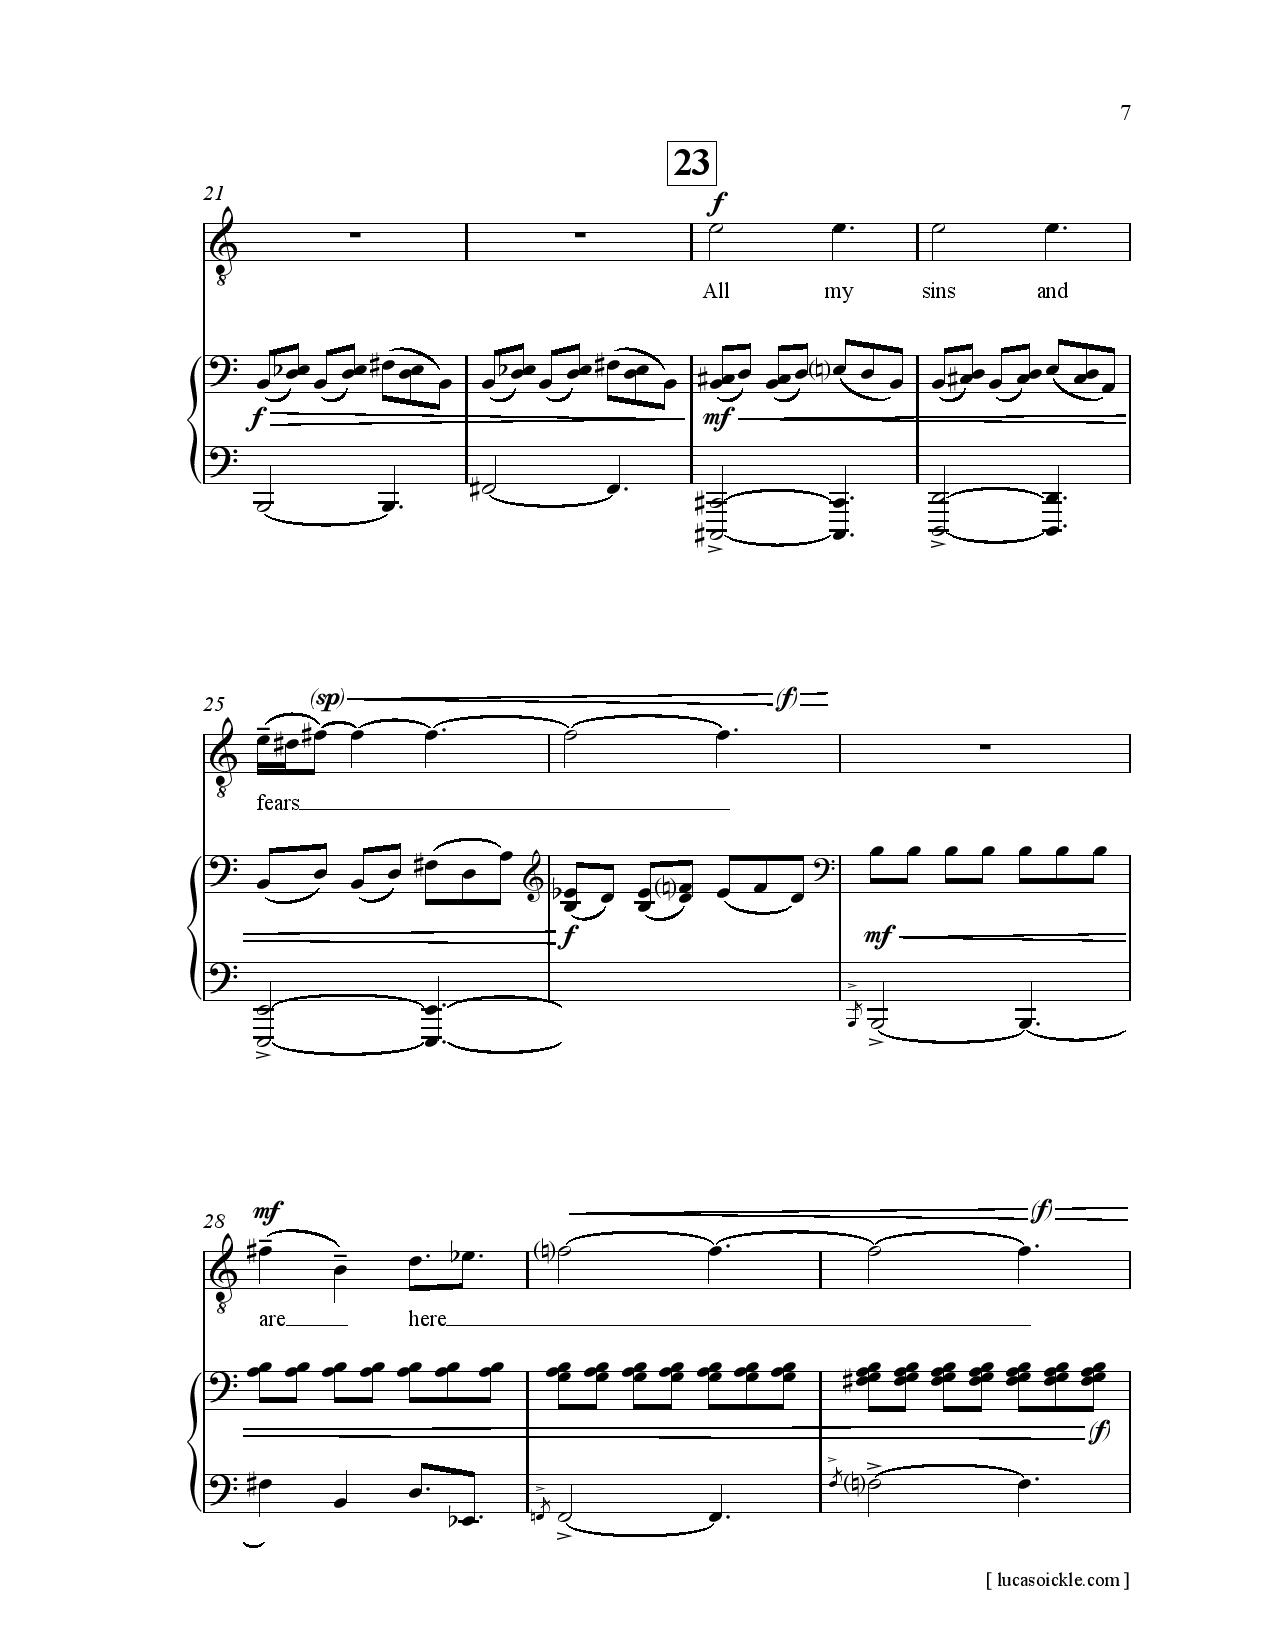 Image Result For Music Theory Ubc